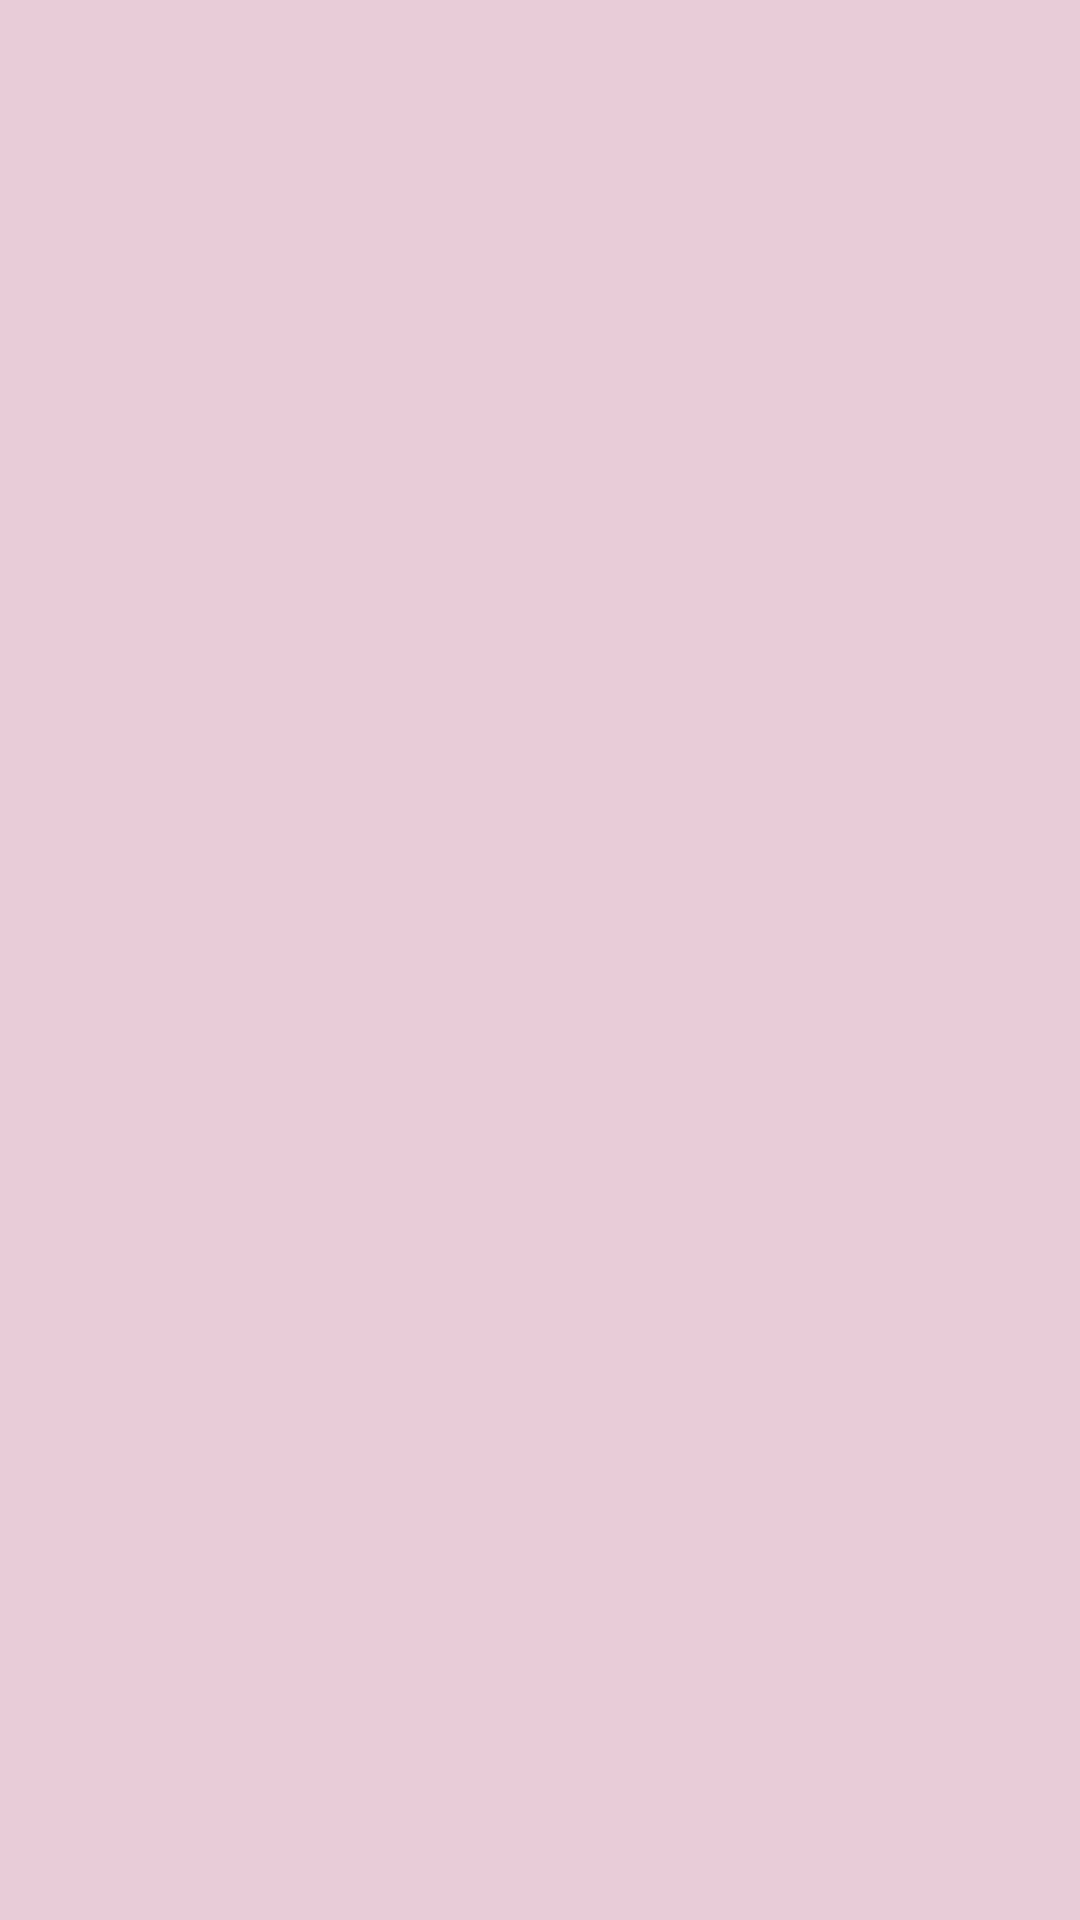 1080x1920 Queen Pink Solid Color Background